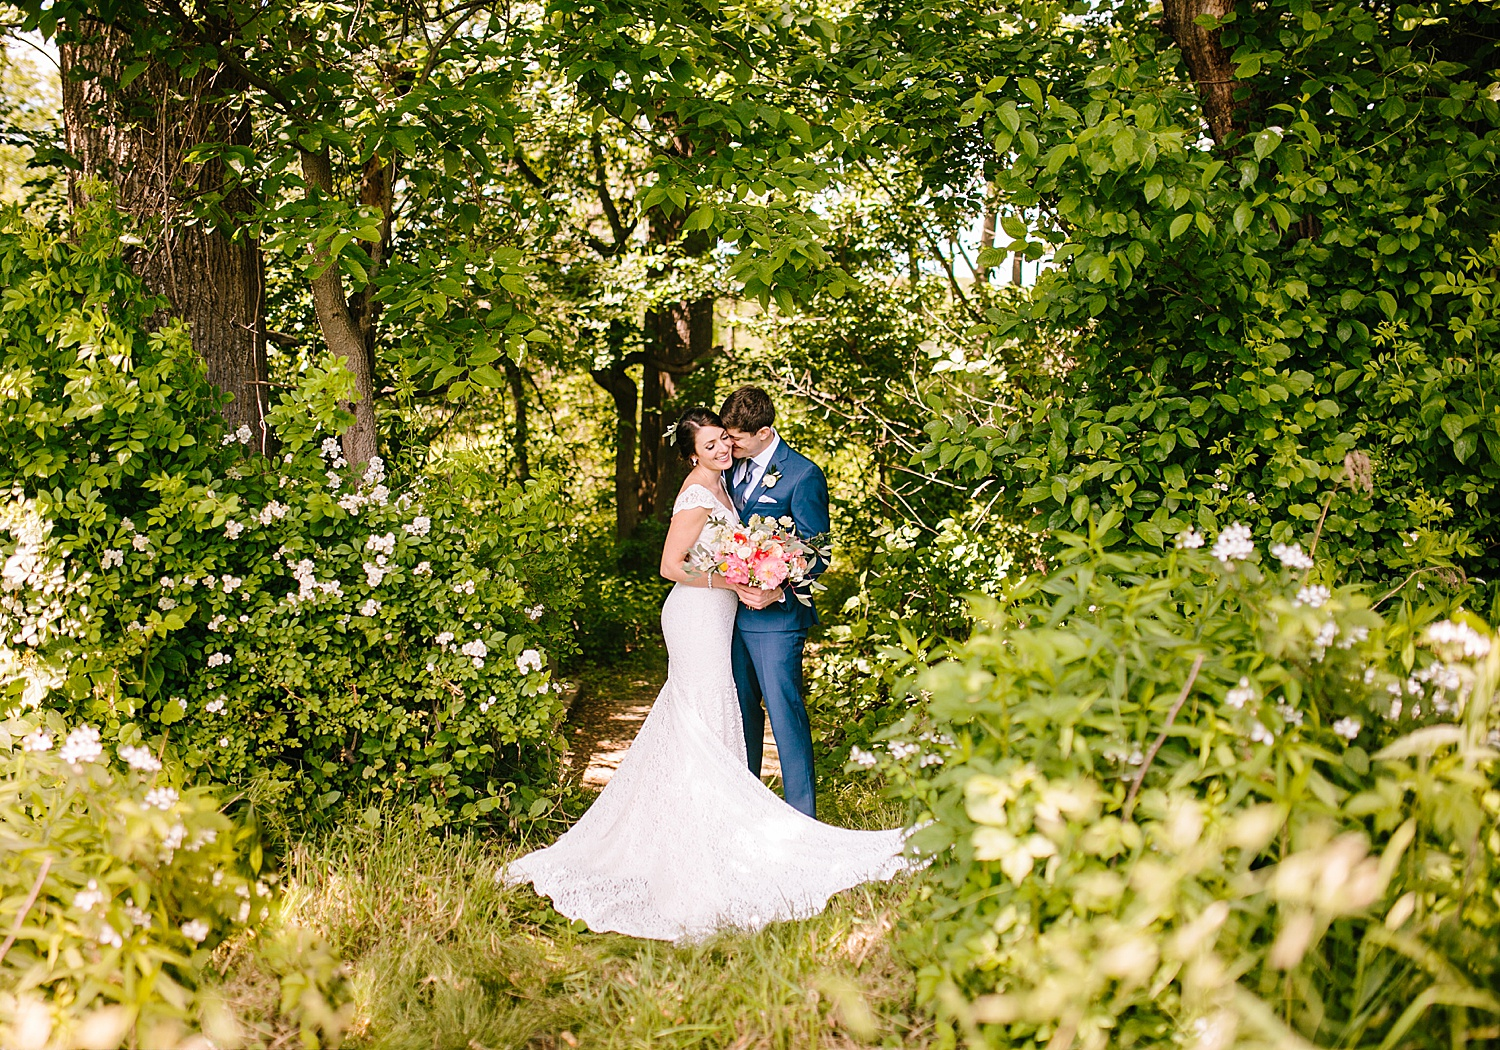 emilyaustin_rosebank_winery_newhope_farm_wedding_image050.jpg